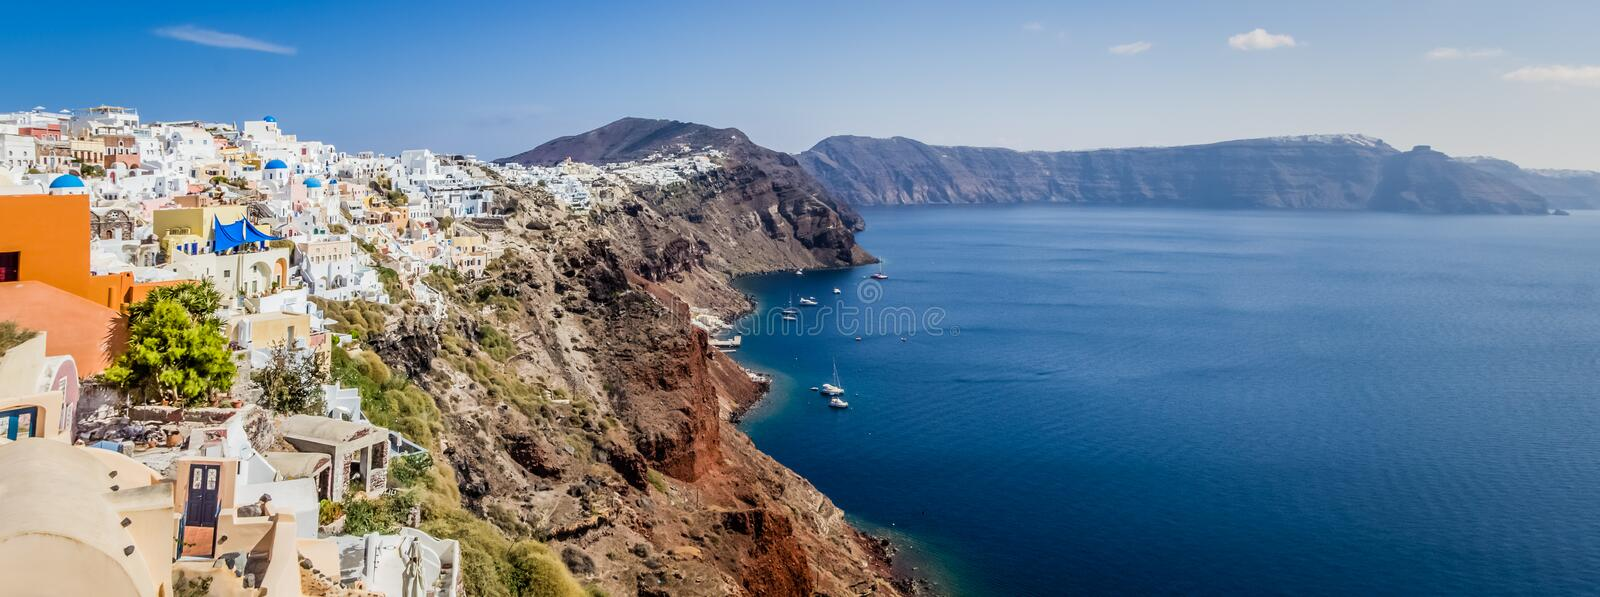 Panoramic view of Oia town, rocks and sea, Santorini island, Greece stock photos